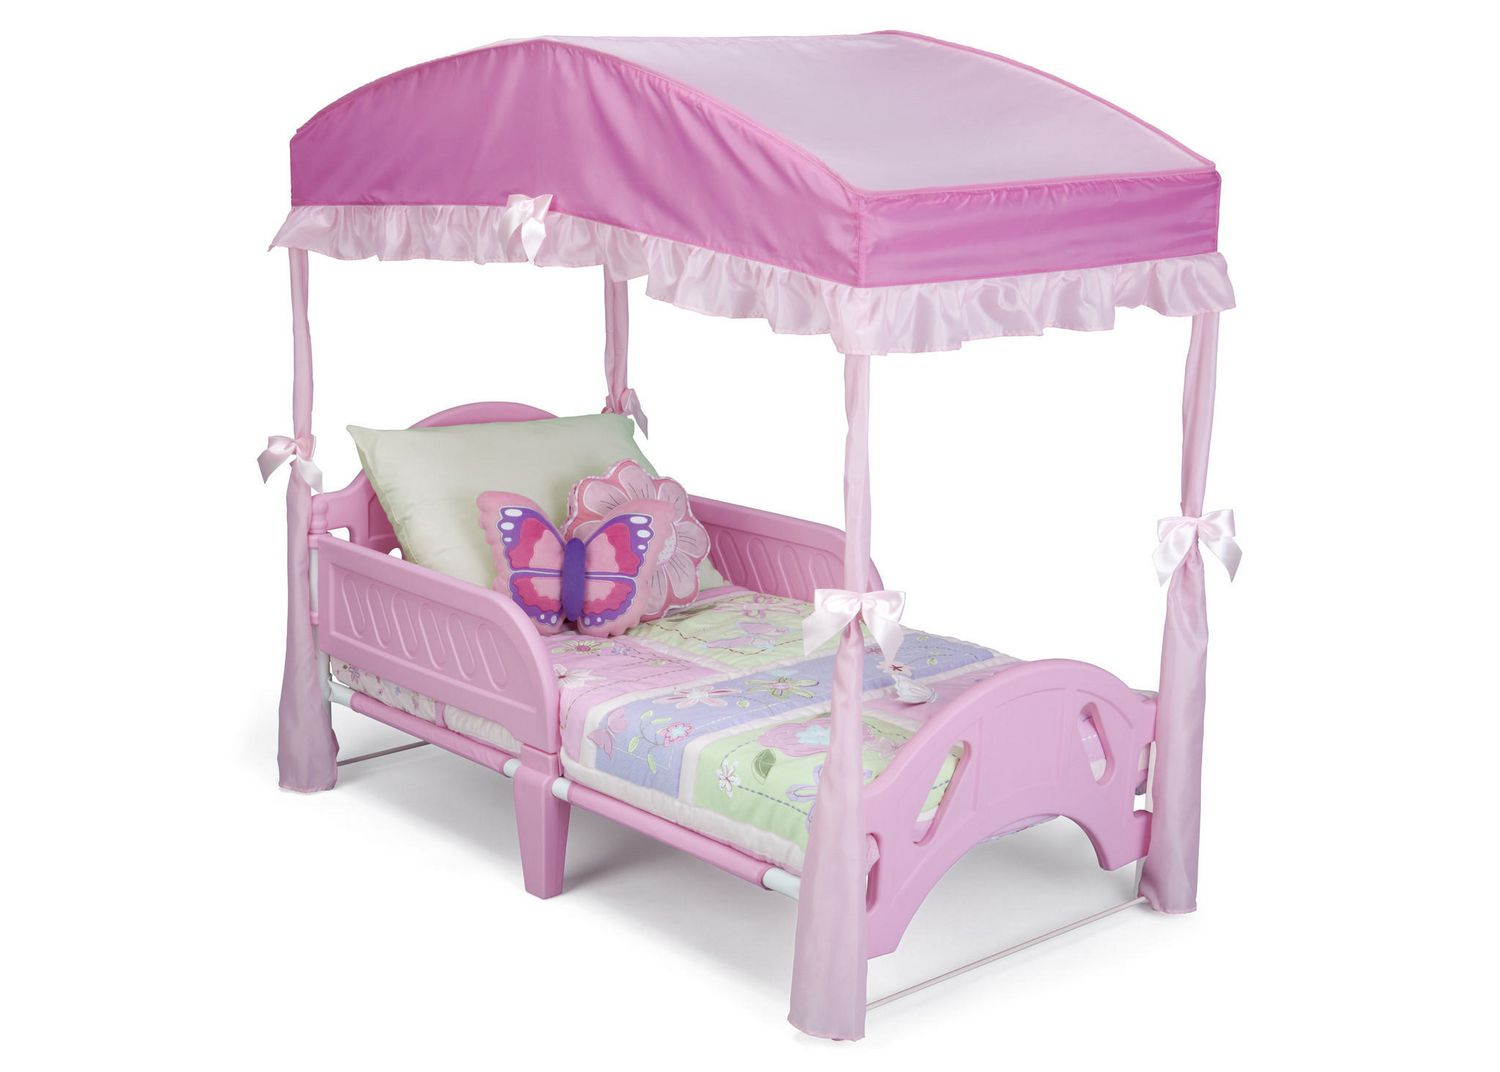 Decorative Canopy For Toddler Bed Pink Walmart Canada